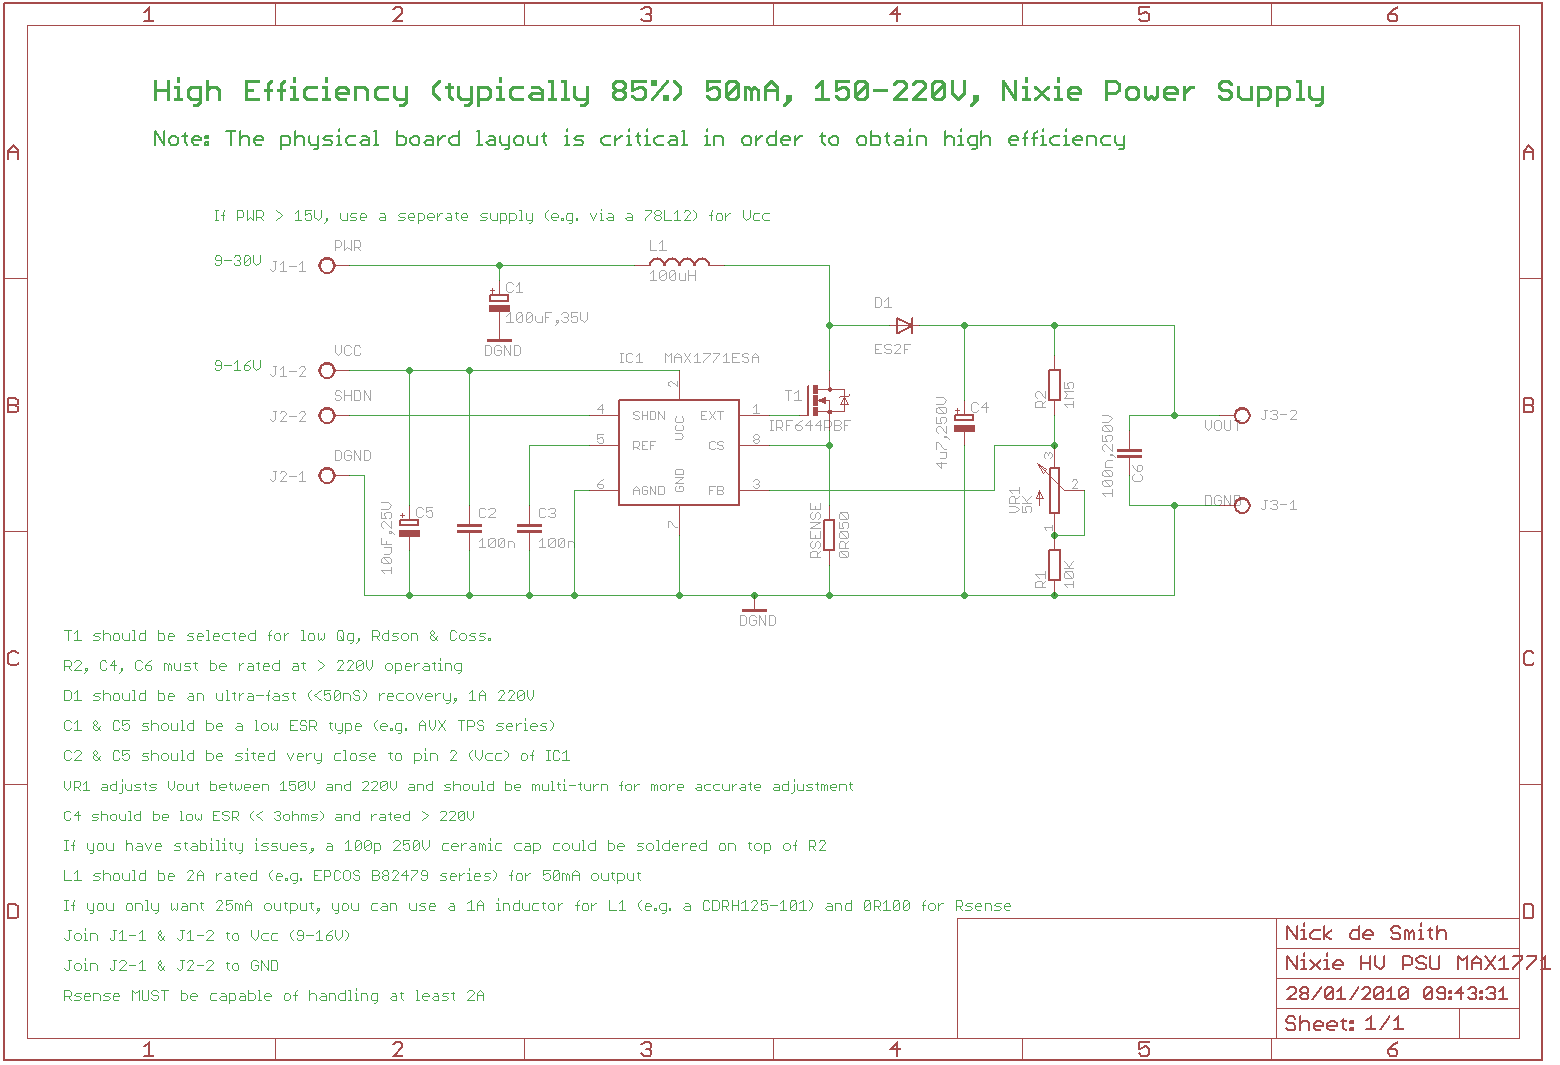 Nixie Hv Switching Psu Schematic Together With Symbols On Eagle Of